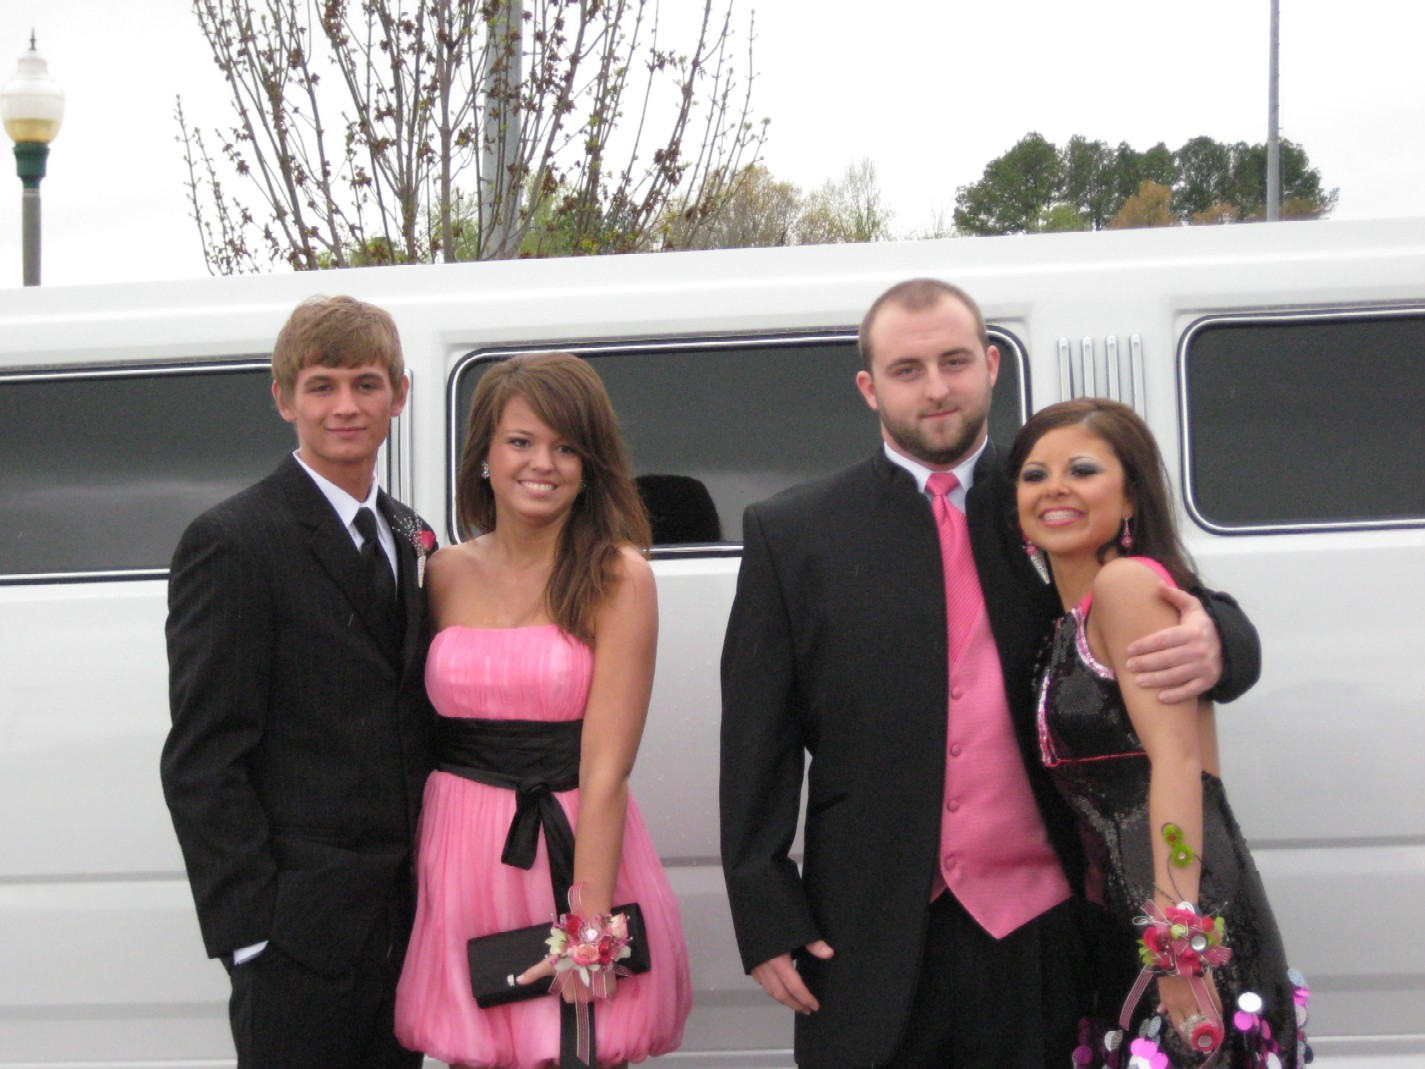 Limo Prom Amazing Prom Flowers Dresses Formal Wear And A Hummer Limo